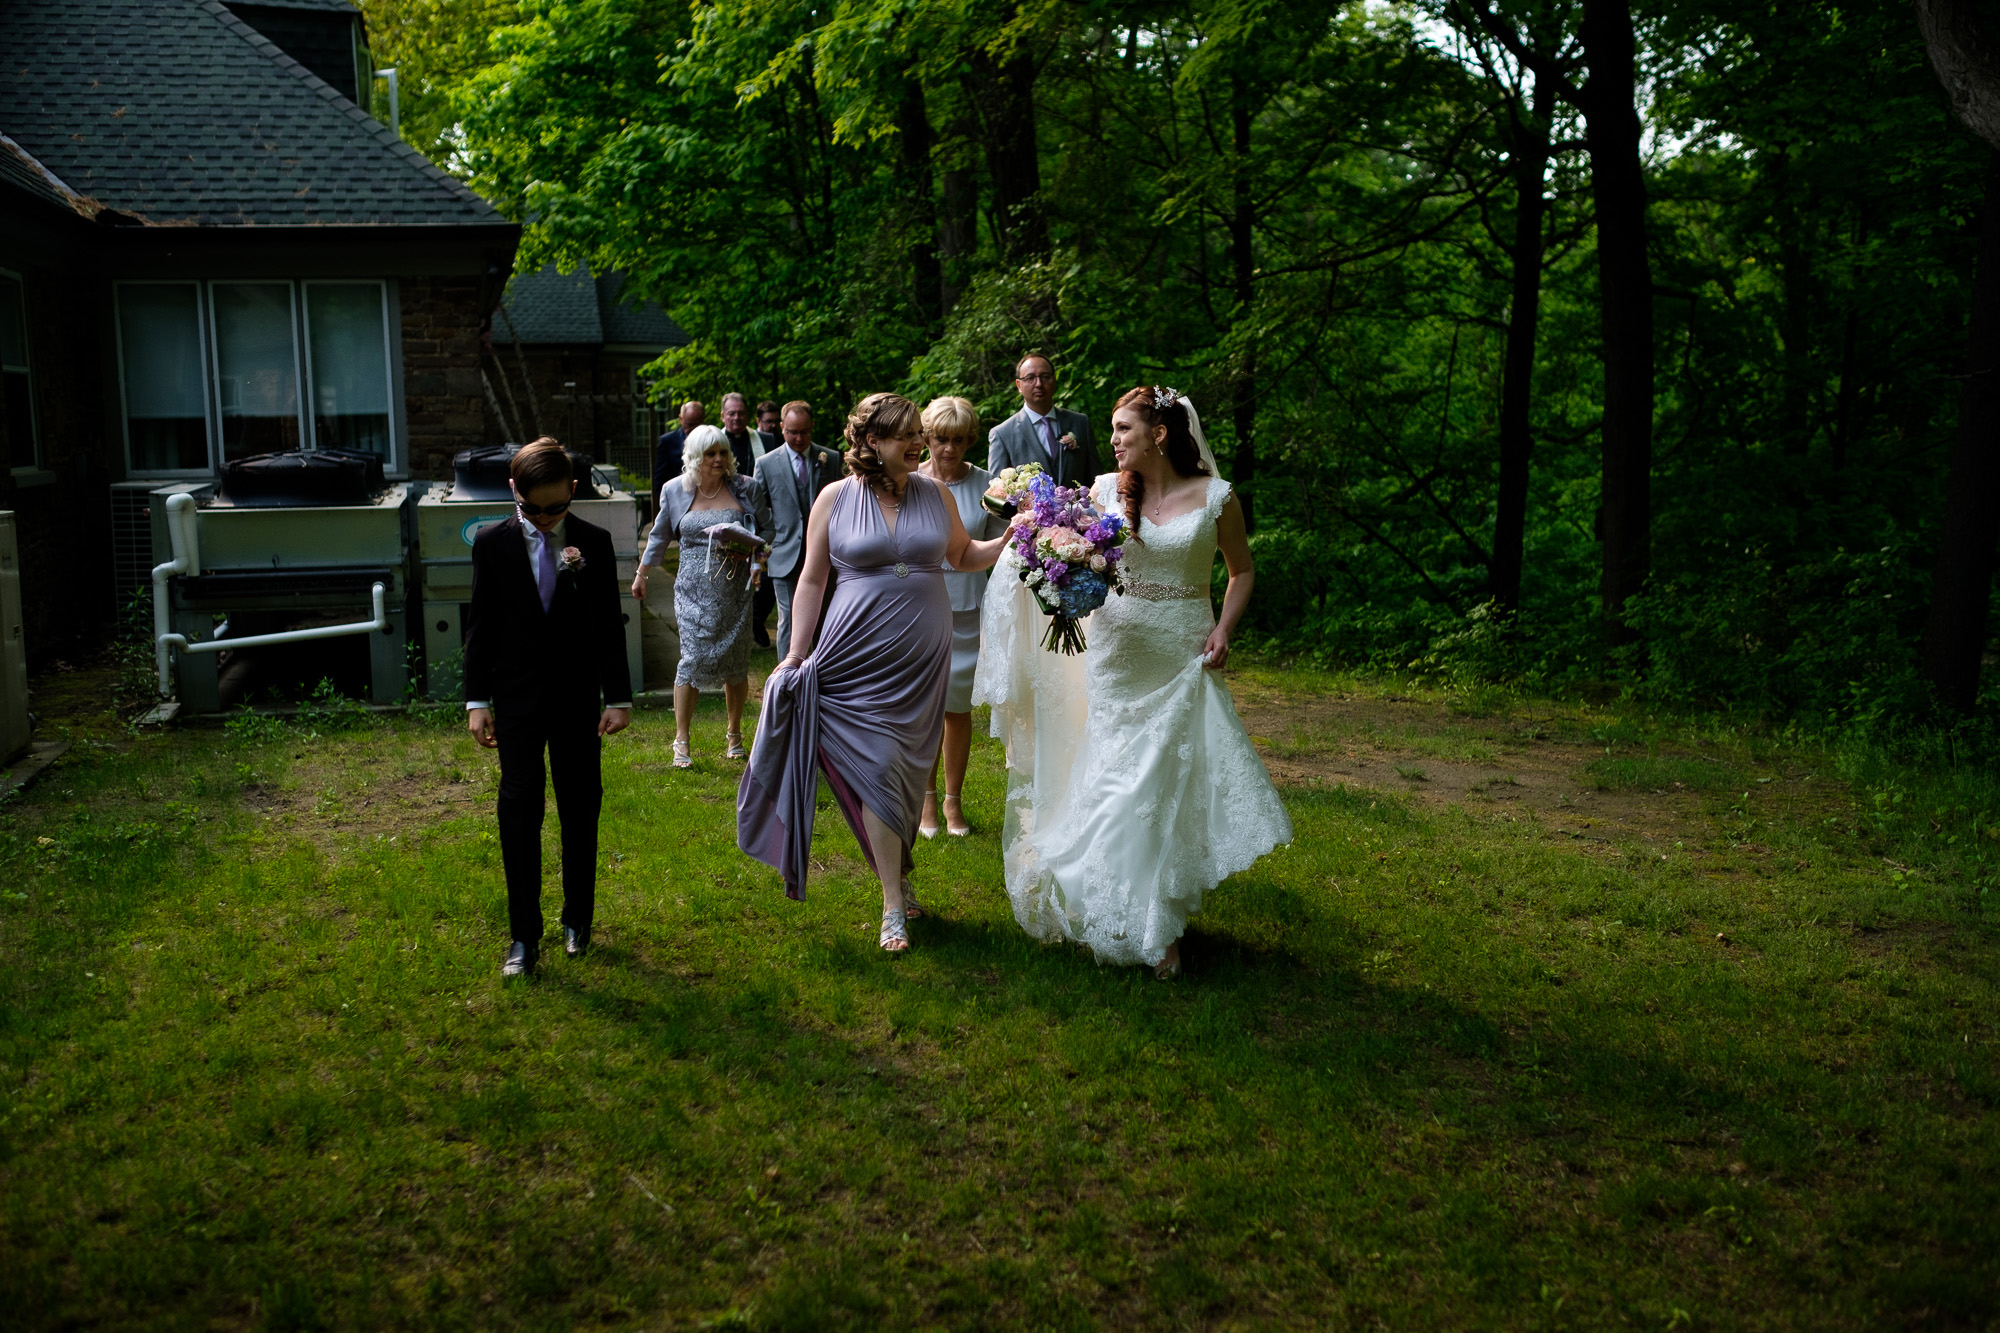 The bride leads her family and friends to the wedding portrait location after the wedding ceremony at the Glenerin Inn just outside of Toronto, ontario.